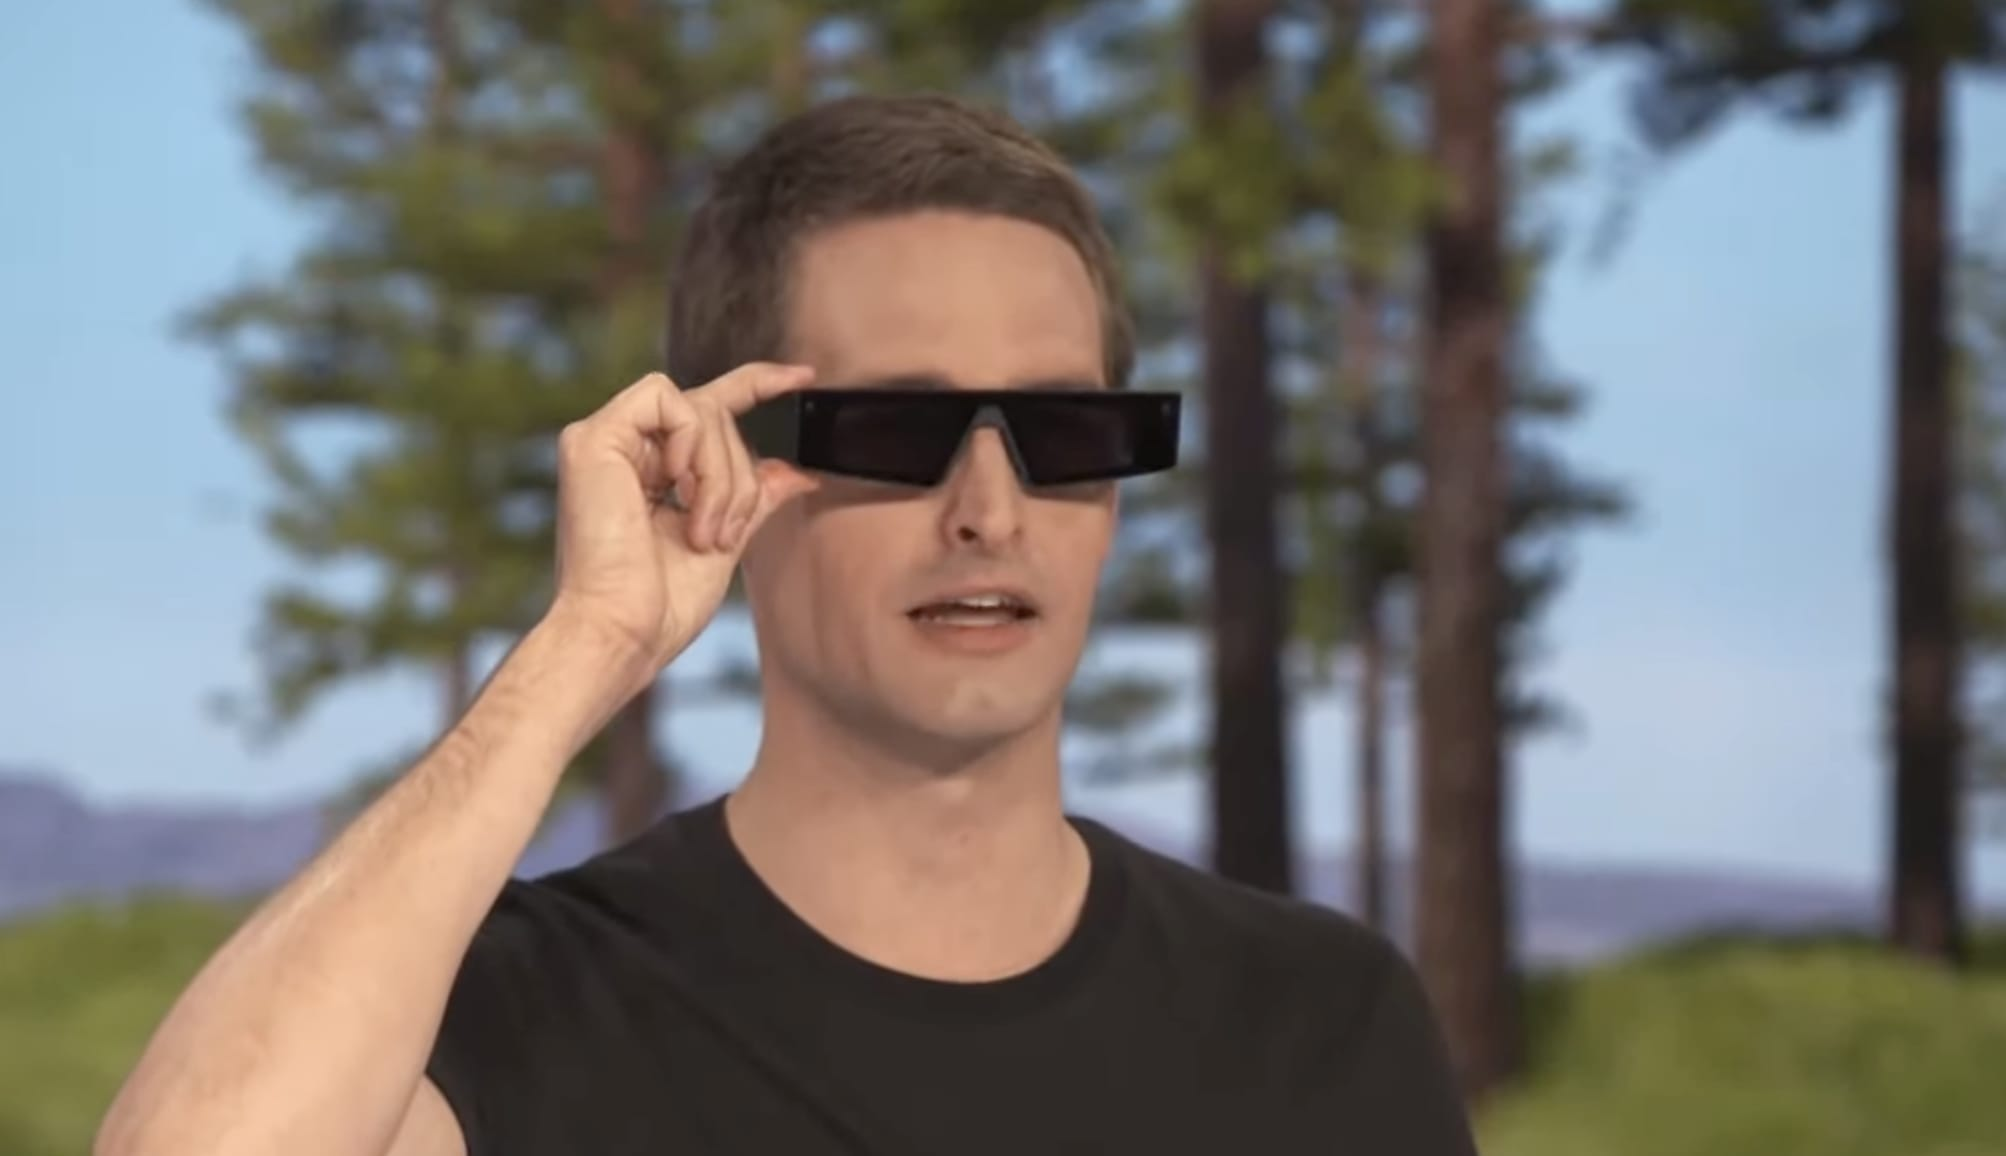 Snap announces new Spectacles AR glasses, which let you overlay digital objects on the real world